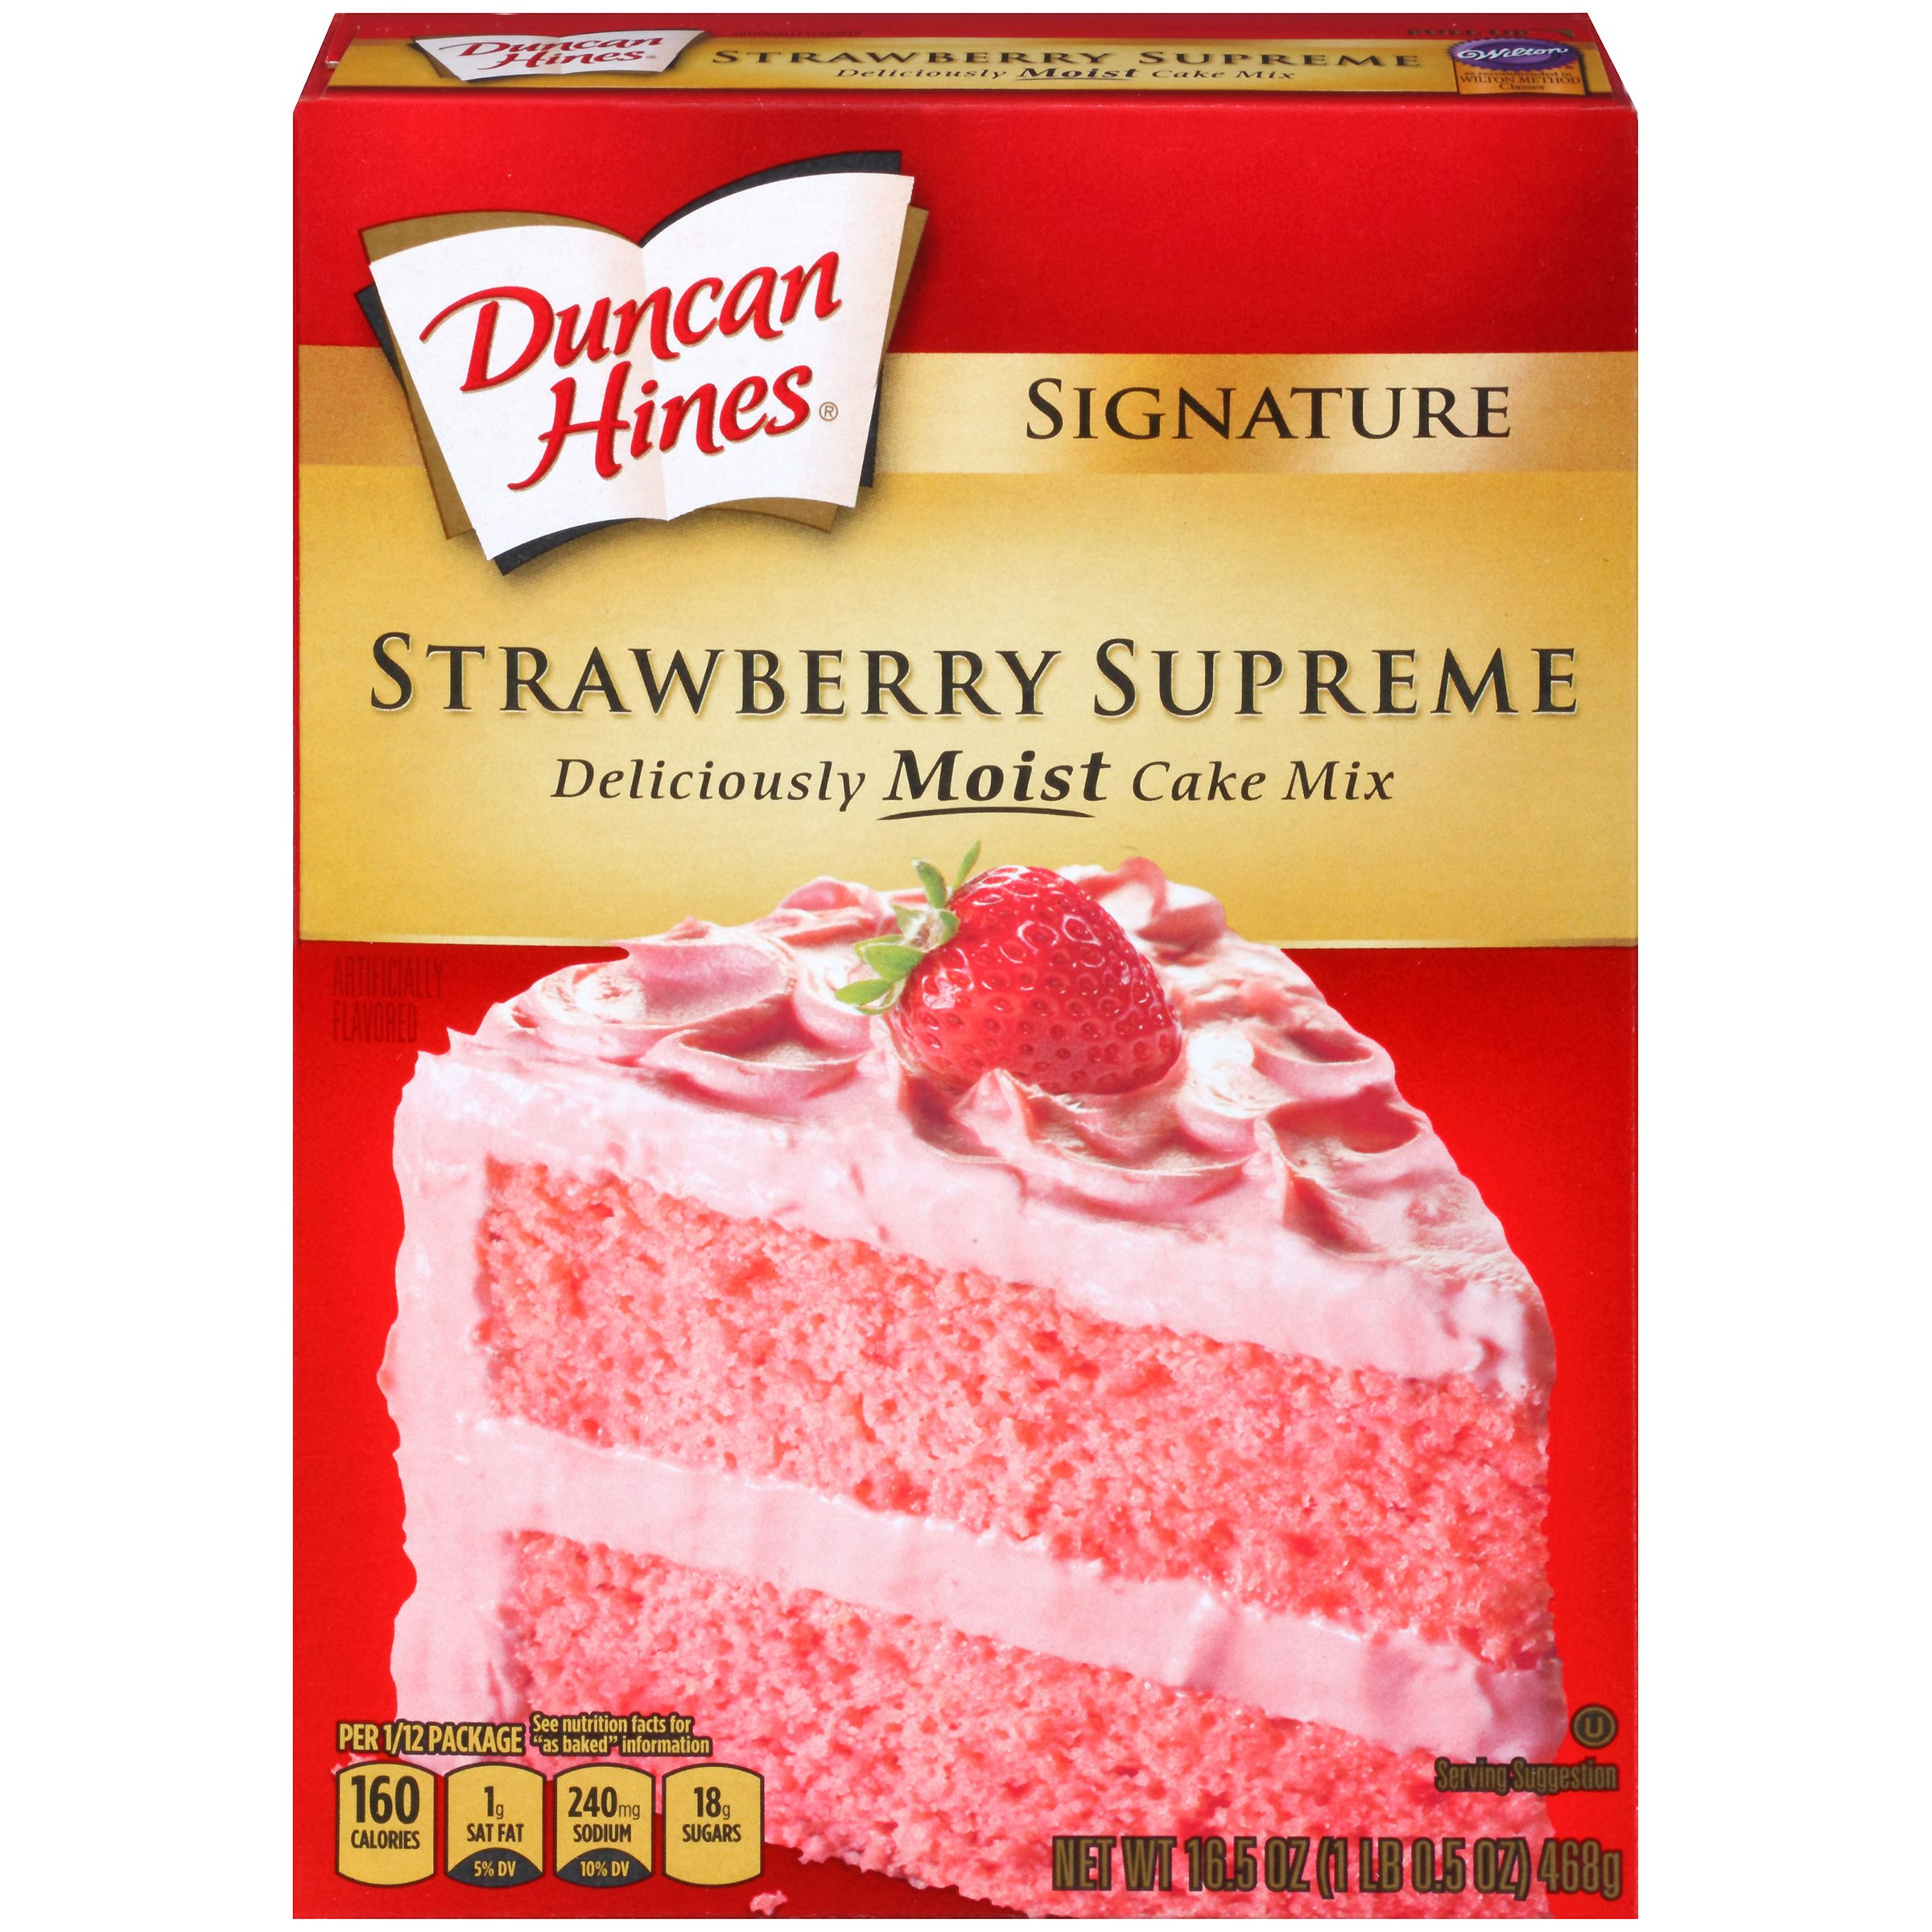 Signature Strawberry Supreme.Wilton® as recommended in Wilton Method ...